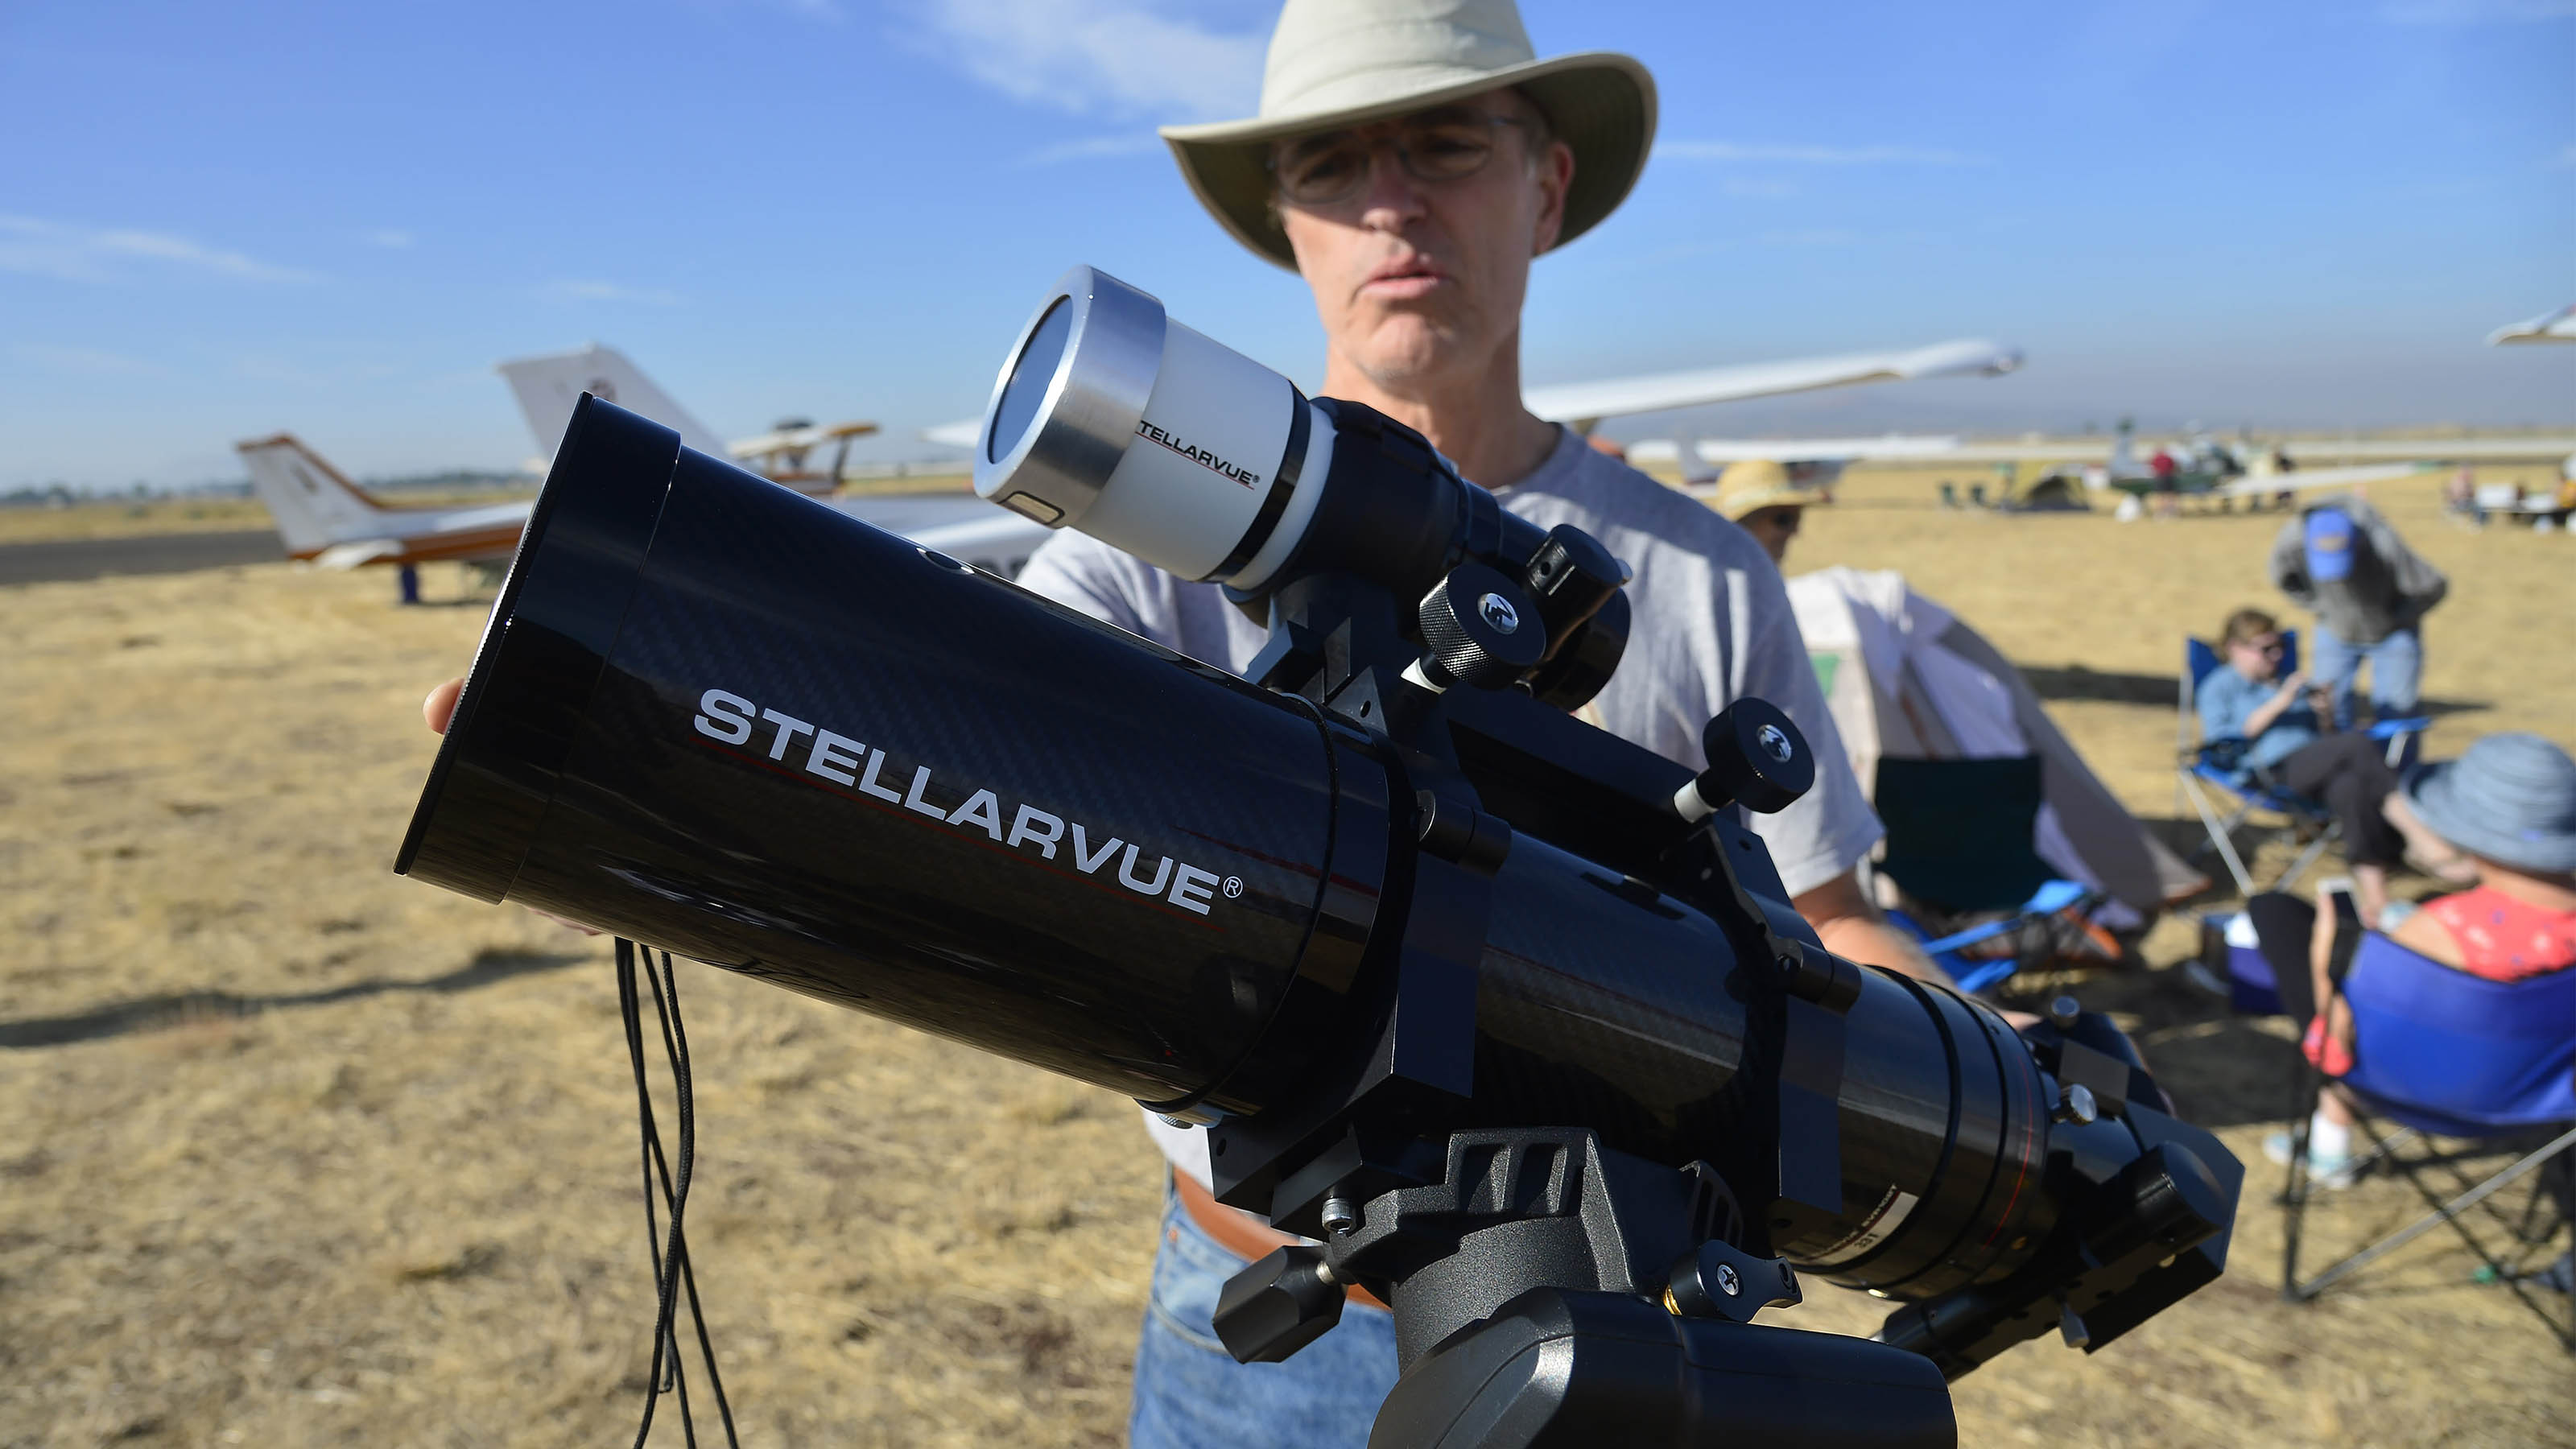 Amateur astronomer and Cessna 182 pilot Chris Newton prepares a Stellarvue telescope that he will use during the total solar eclipse at Madras Municipal Airport in Madras, Oregon. Photo by David Tulis.